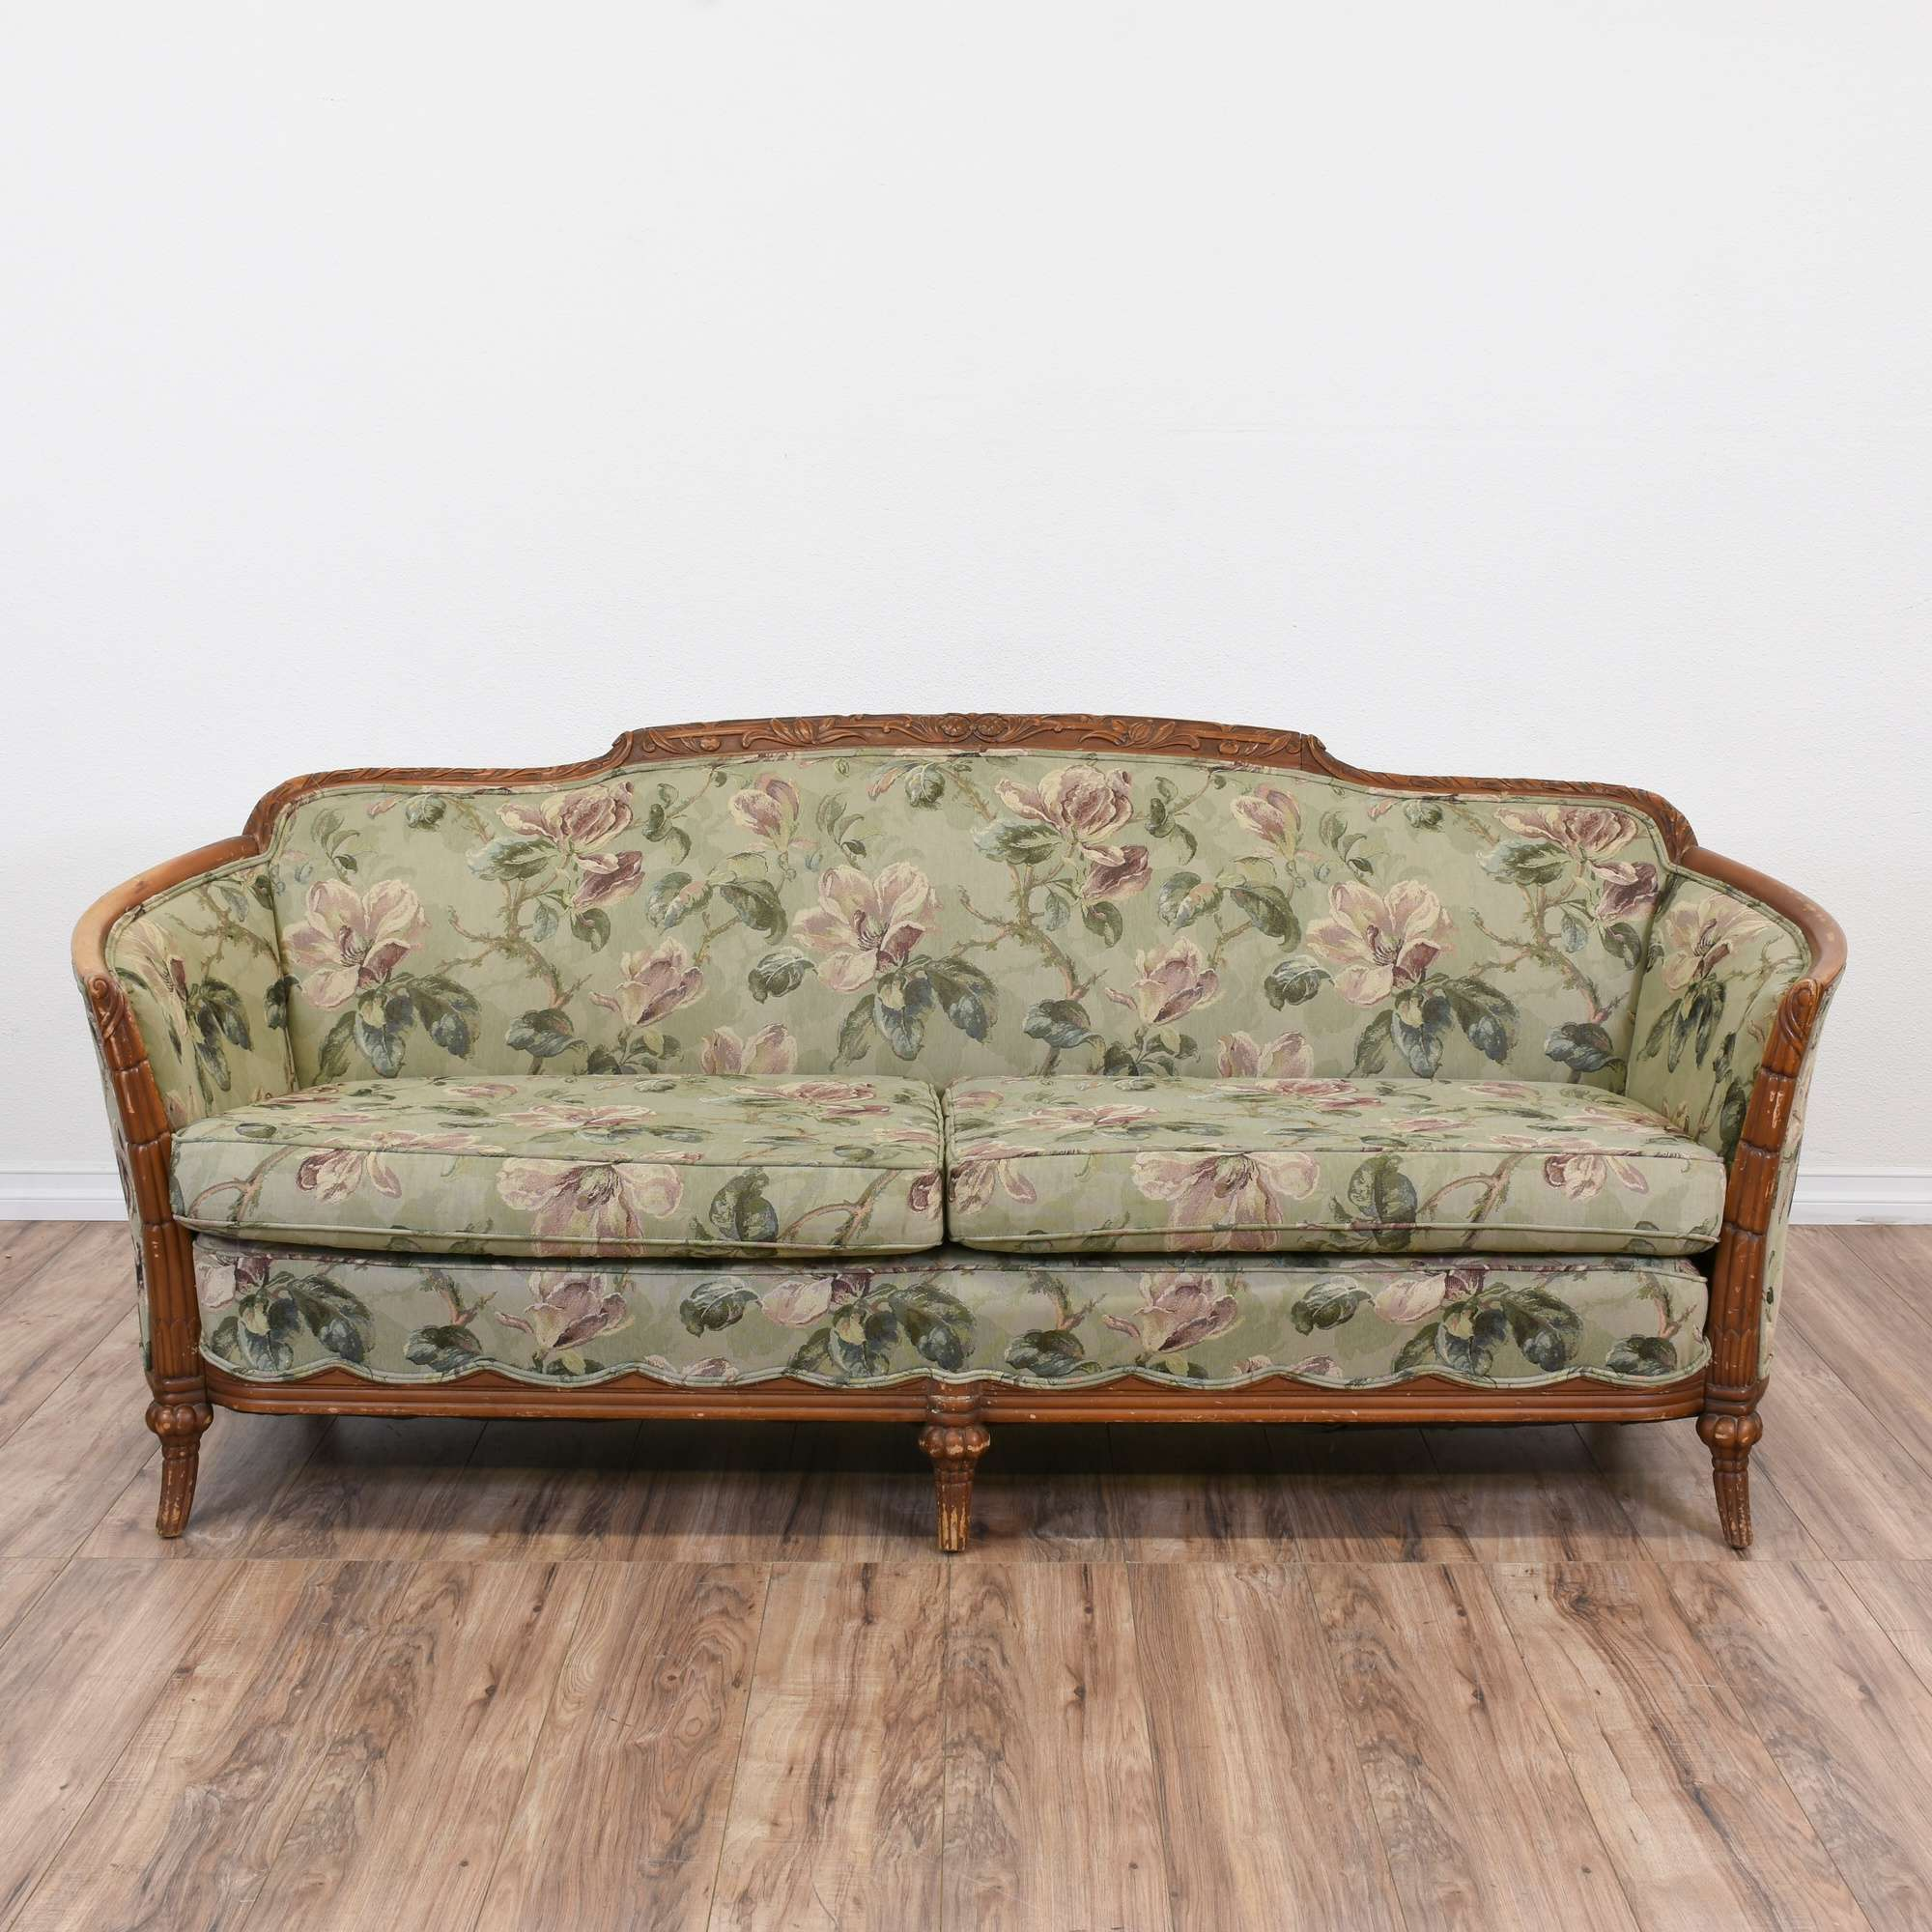 Antique Wooden Sofa ~ Antique wood trimmed sofa energywarden